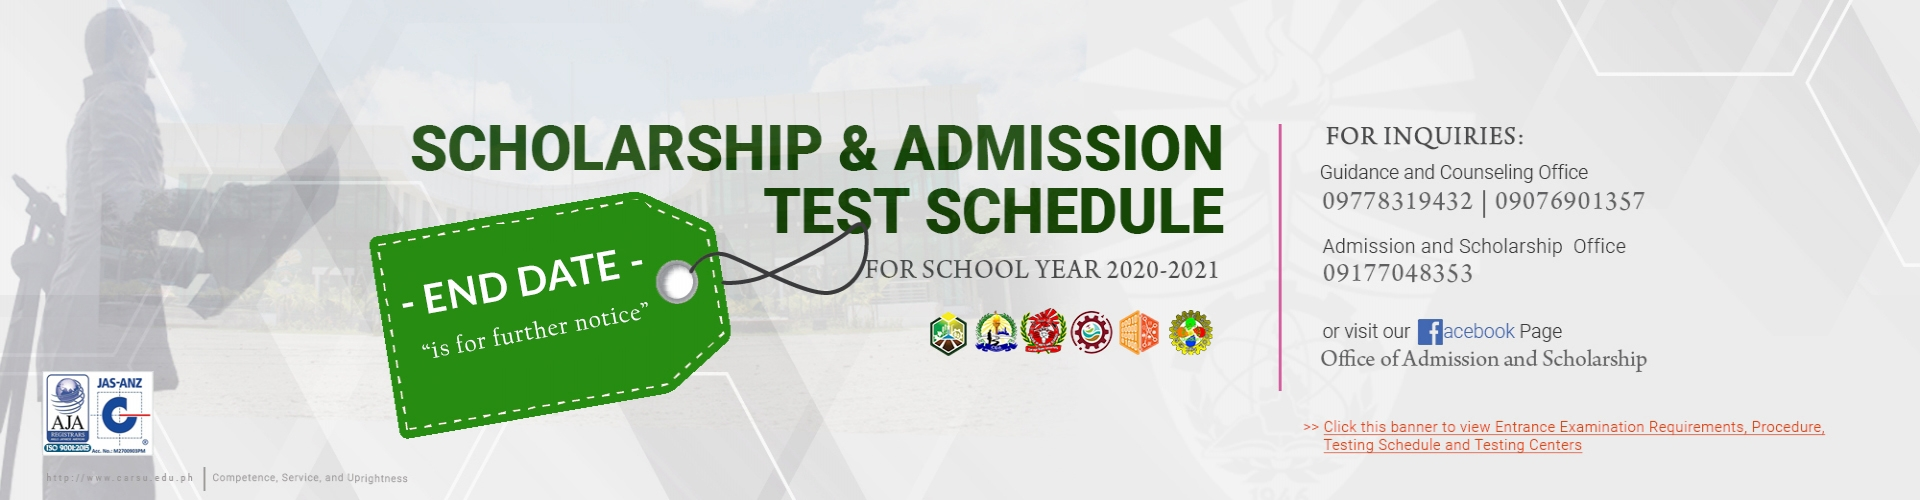 Click this banner to view CSU Entrance Examination Requirements, Procedure, Testing Schedule and Testing Centers